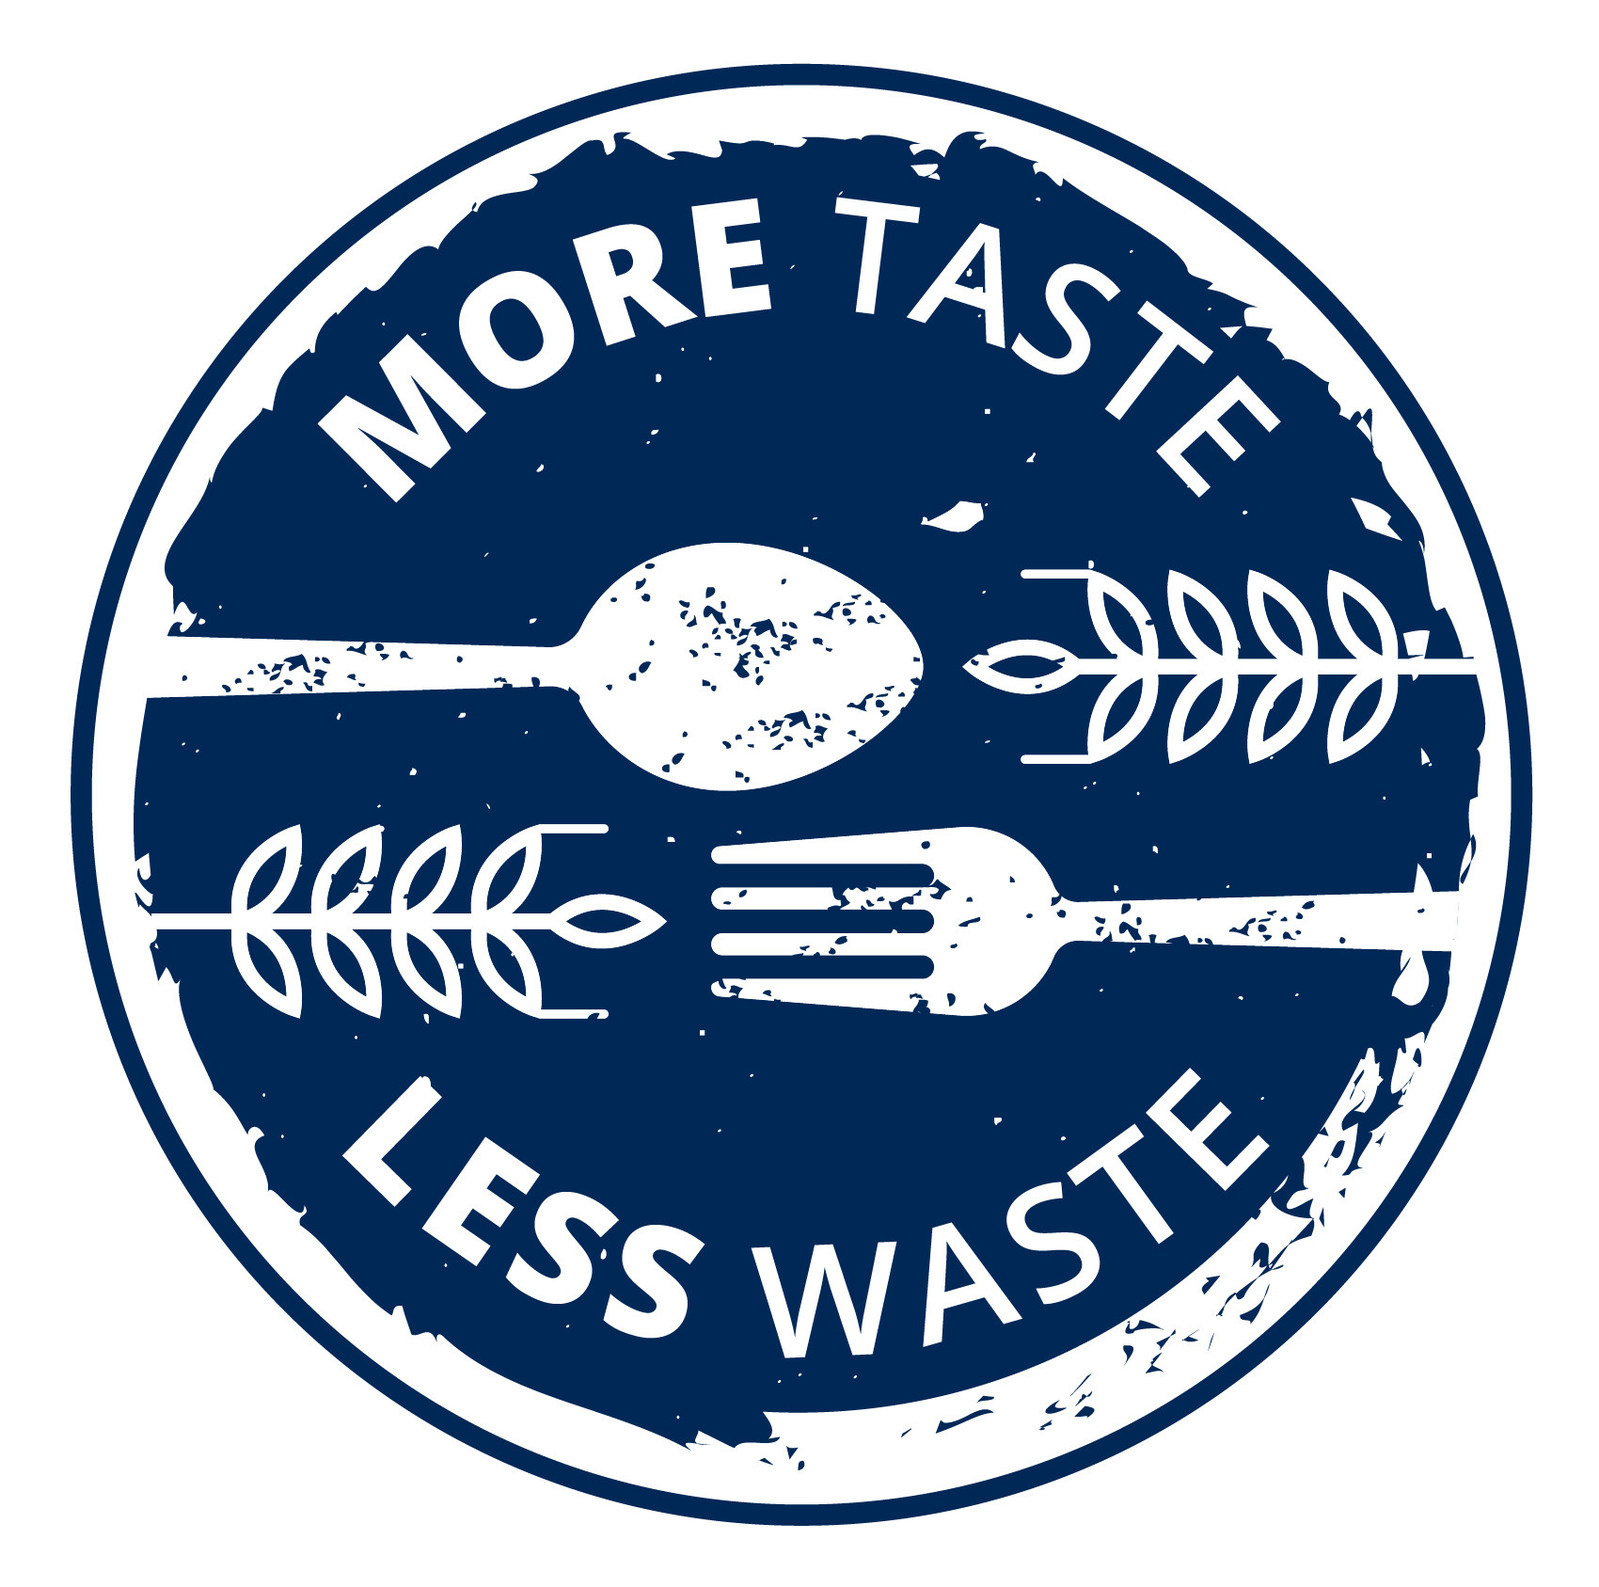 Quaker More Taste Less Waste (PRNewsfoto/The Quaker Oats Company)